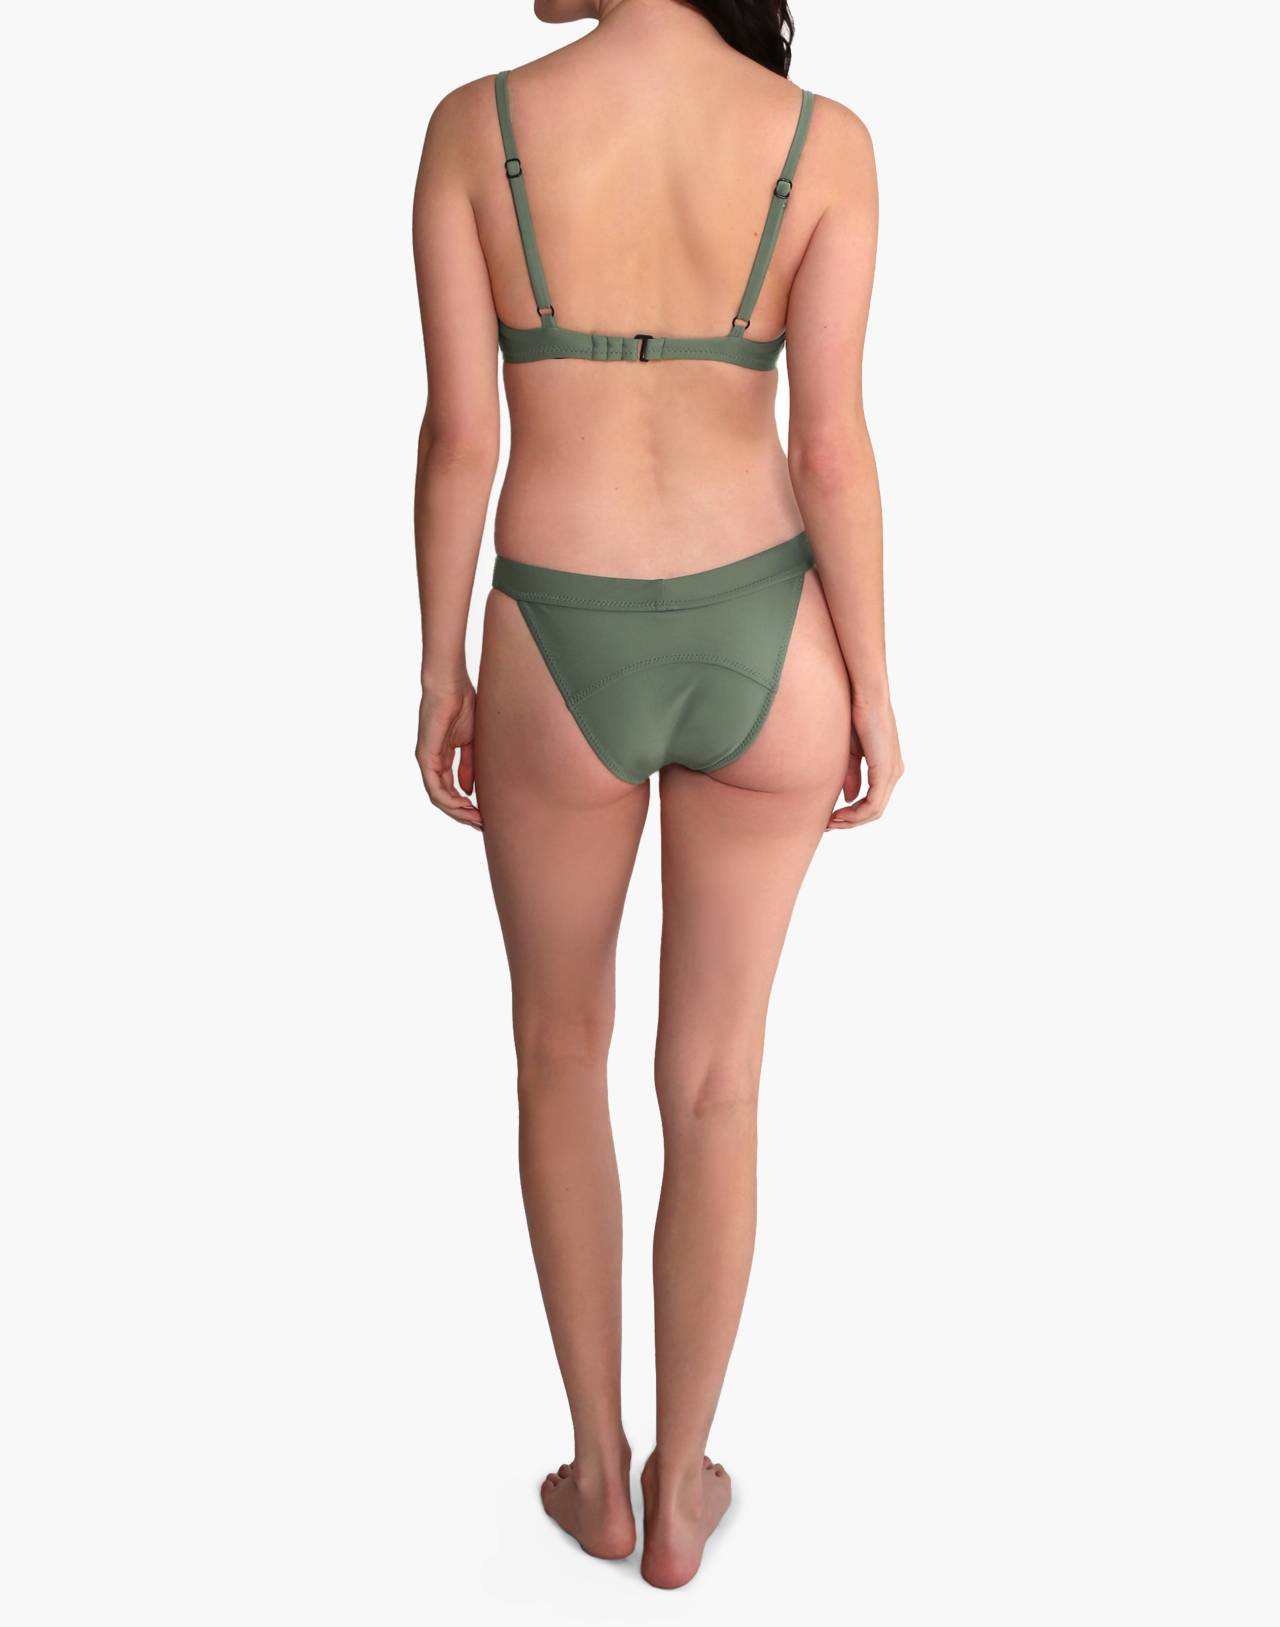 GALAMAAR® Band Brief Bikini Bottom in green image 2